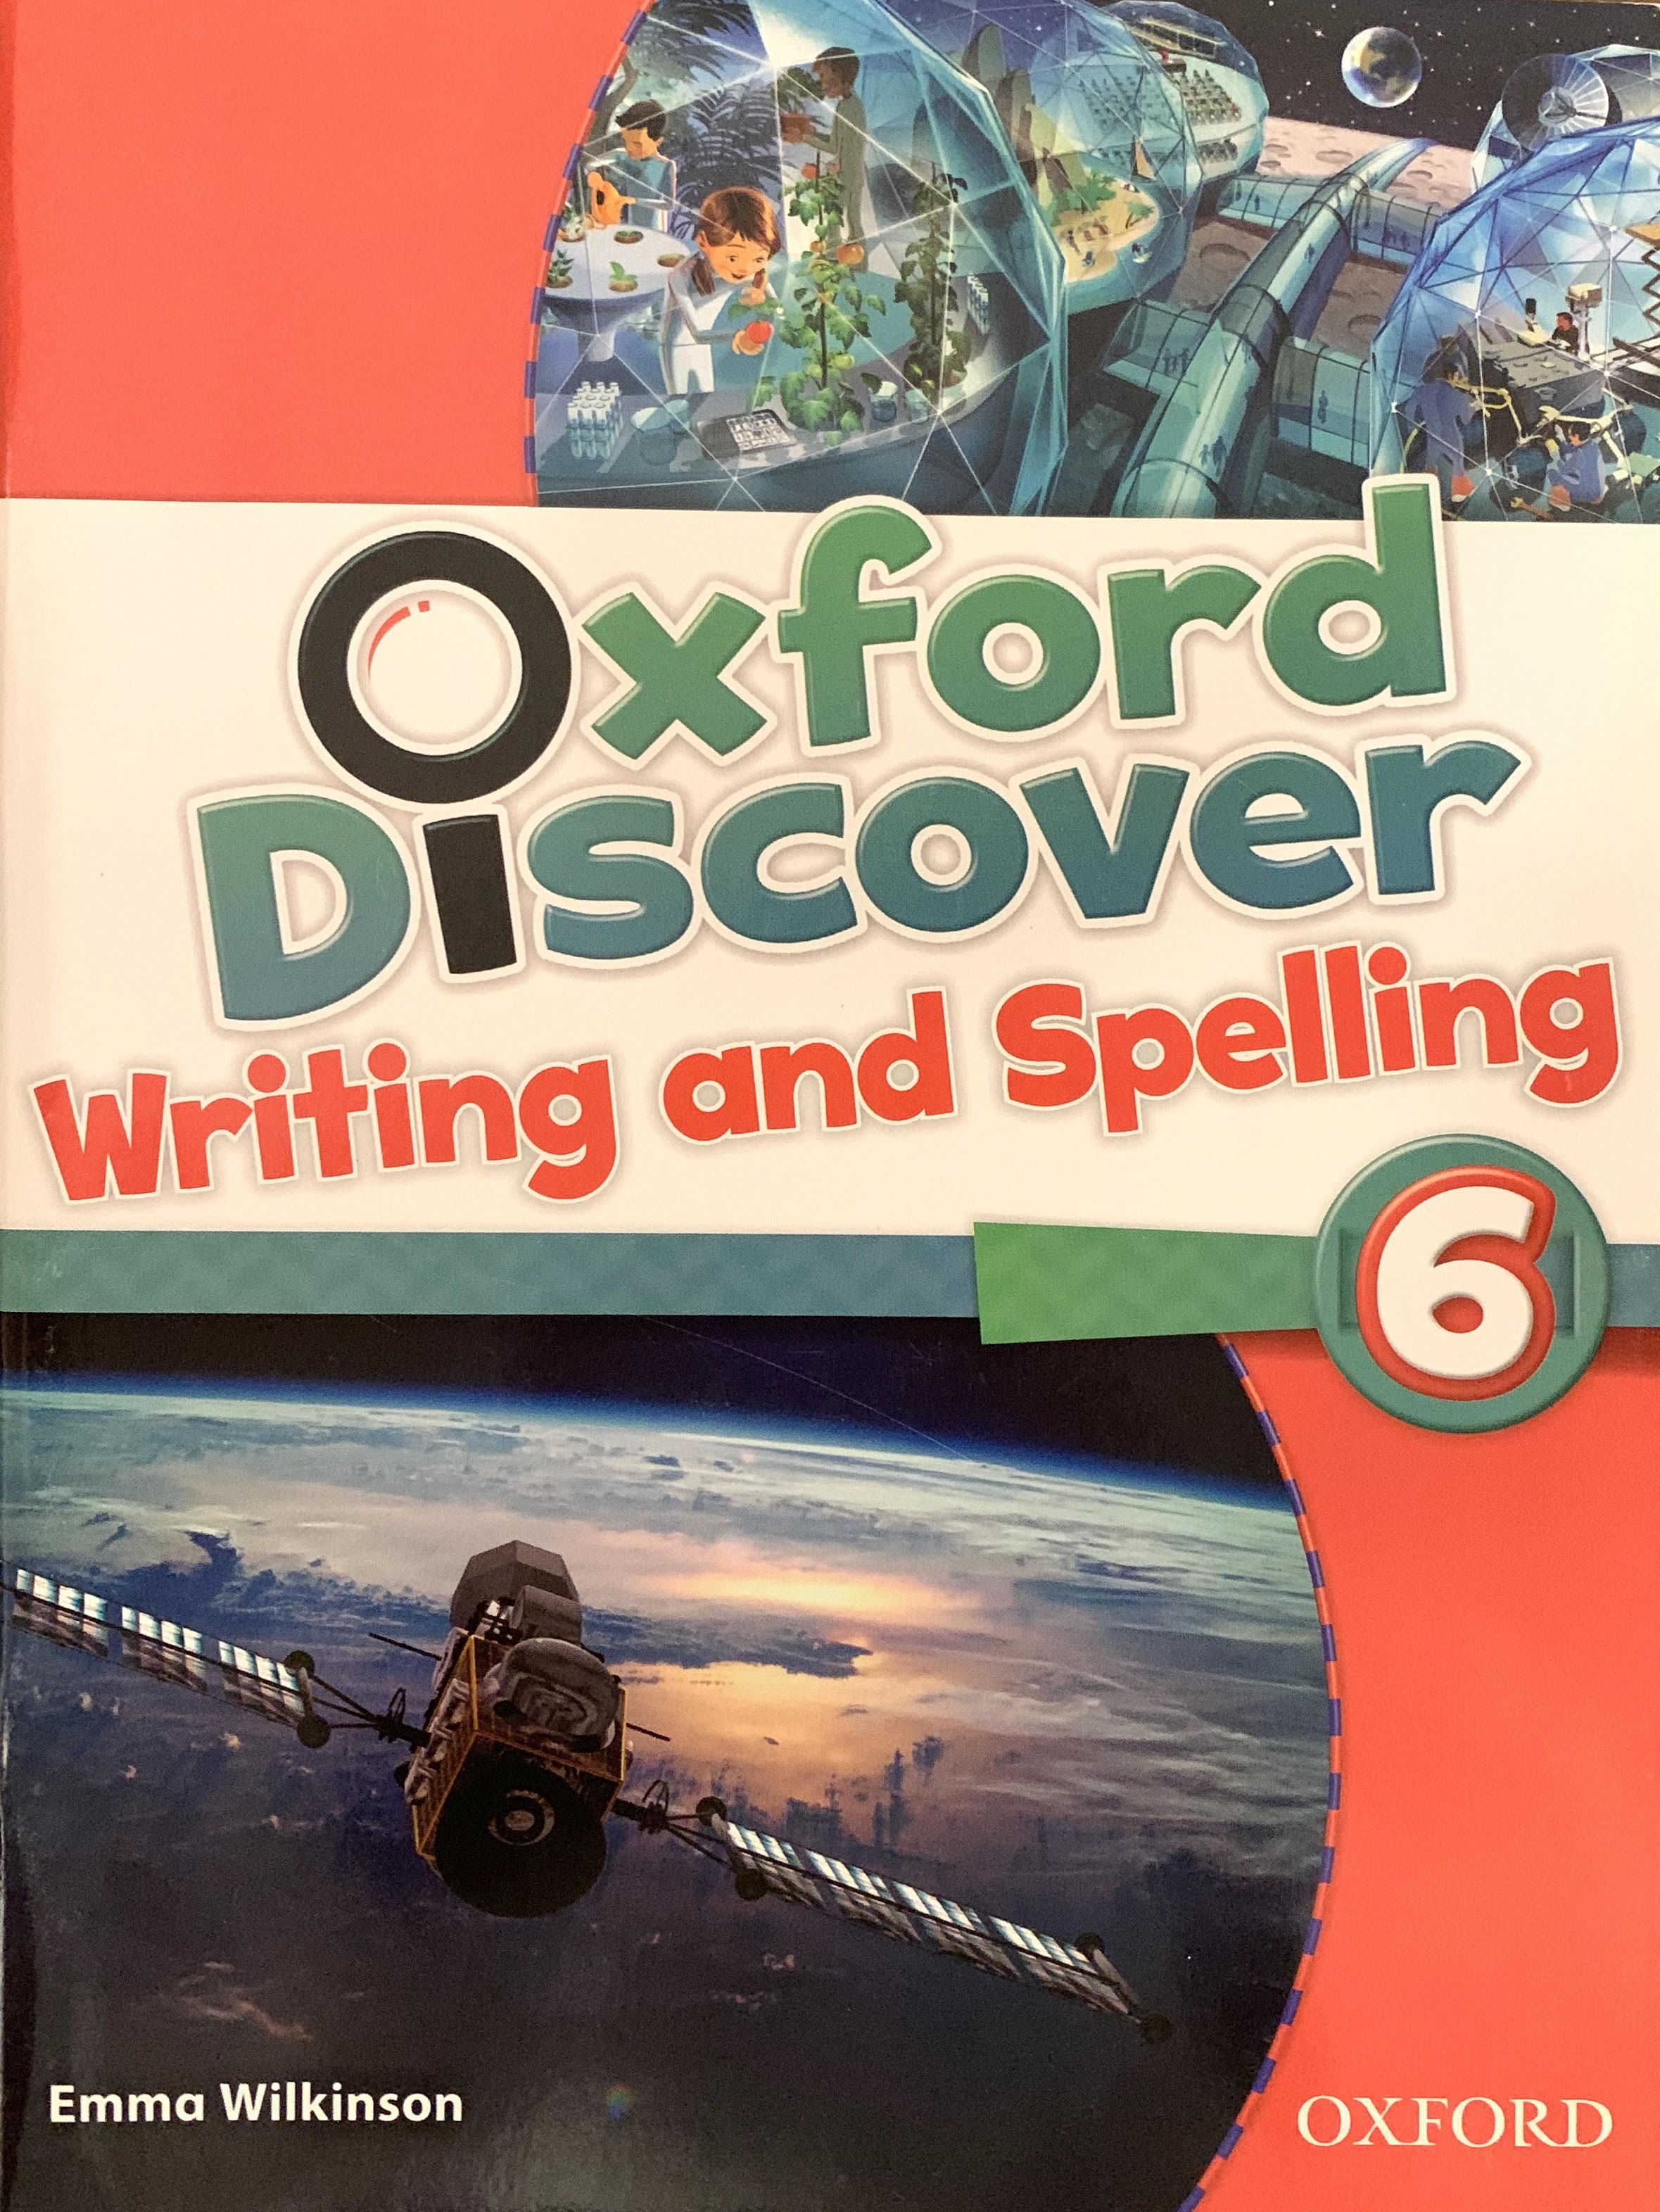 Oxford Discover Writing and Spelling 6